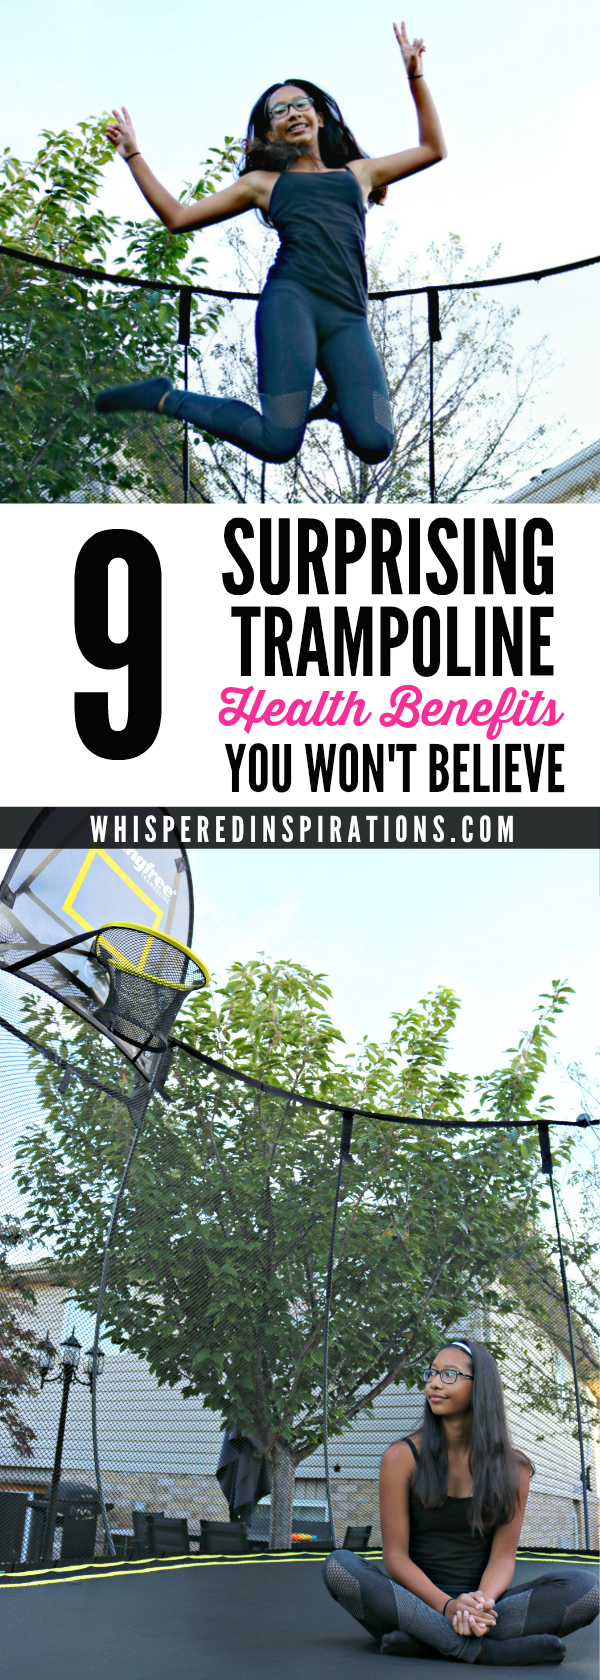 9 Surprising Trampoline Health Benefits You Won't Believe!